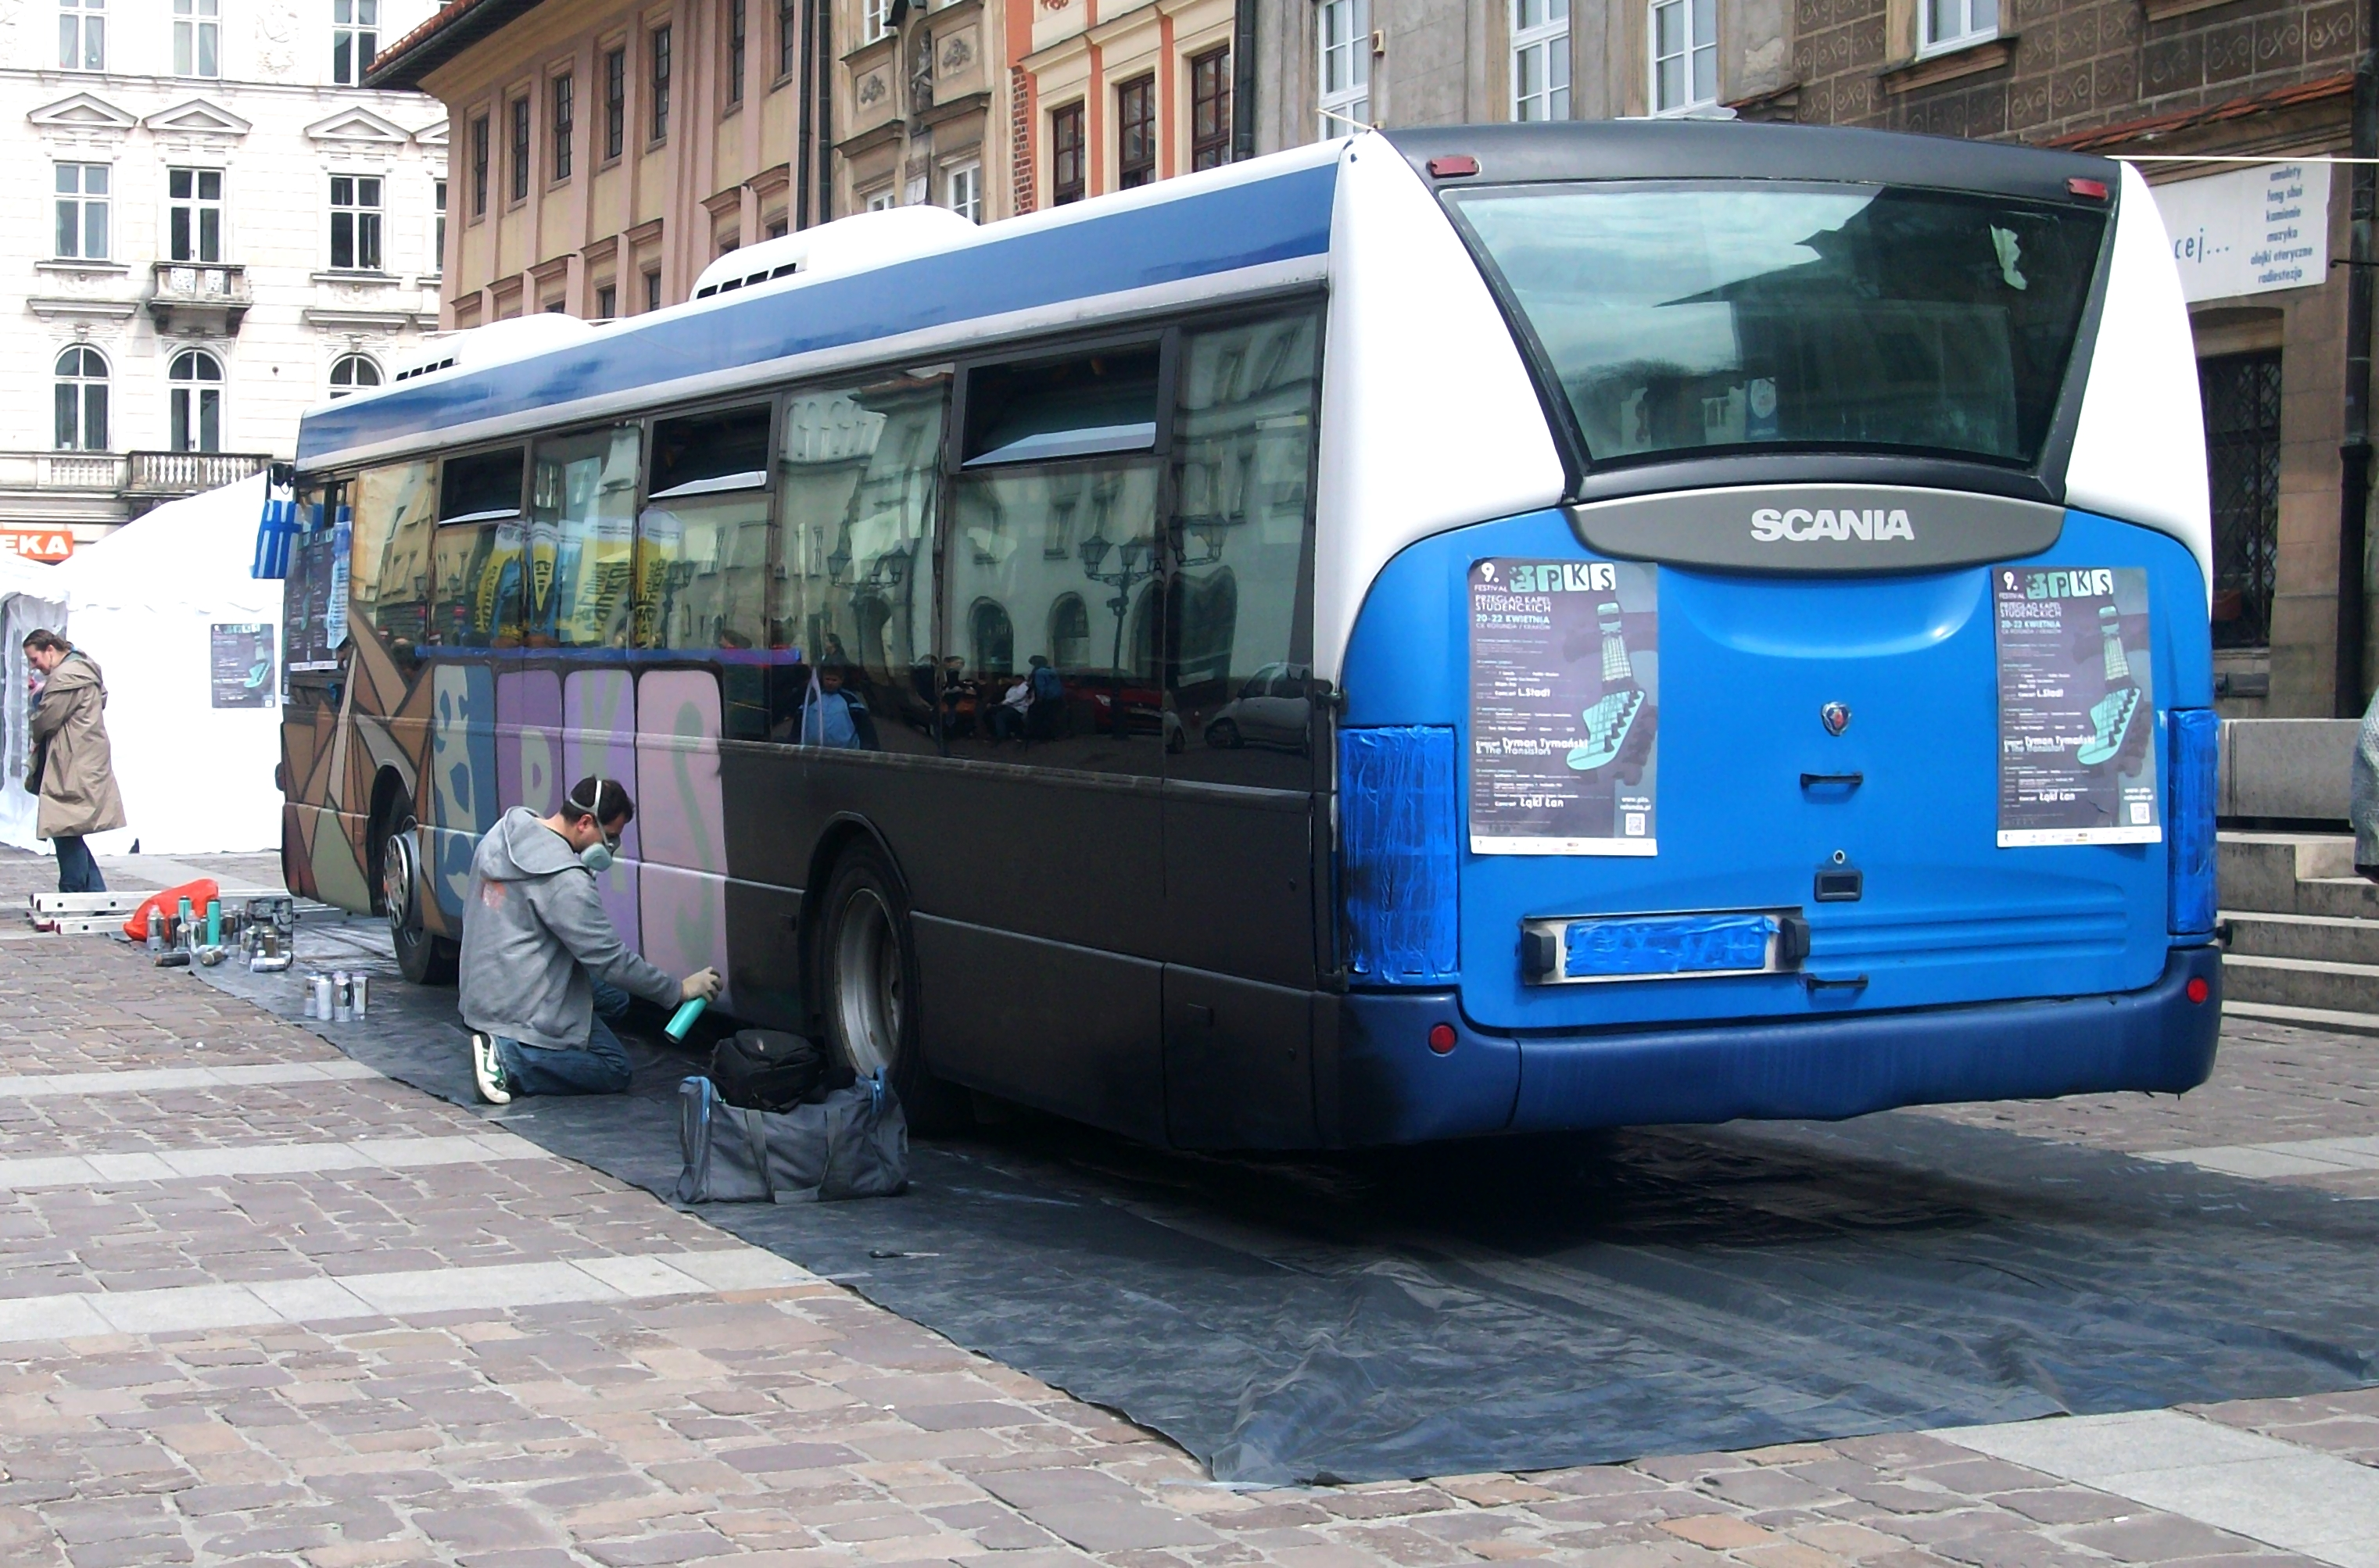 Scania omnicity photo - 7